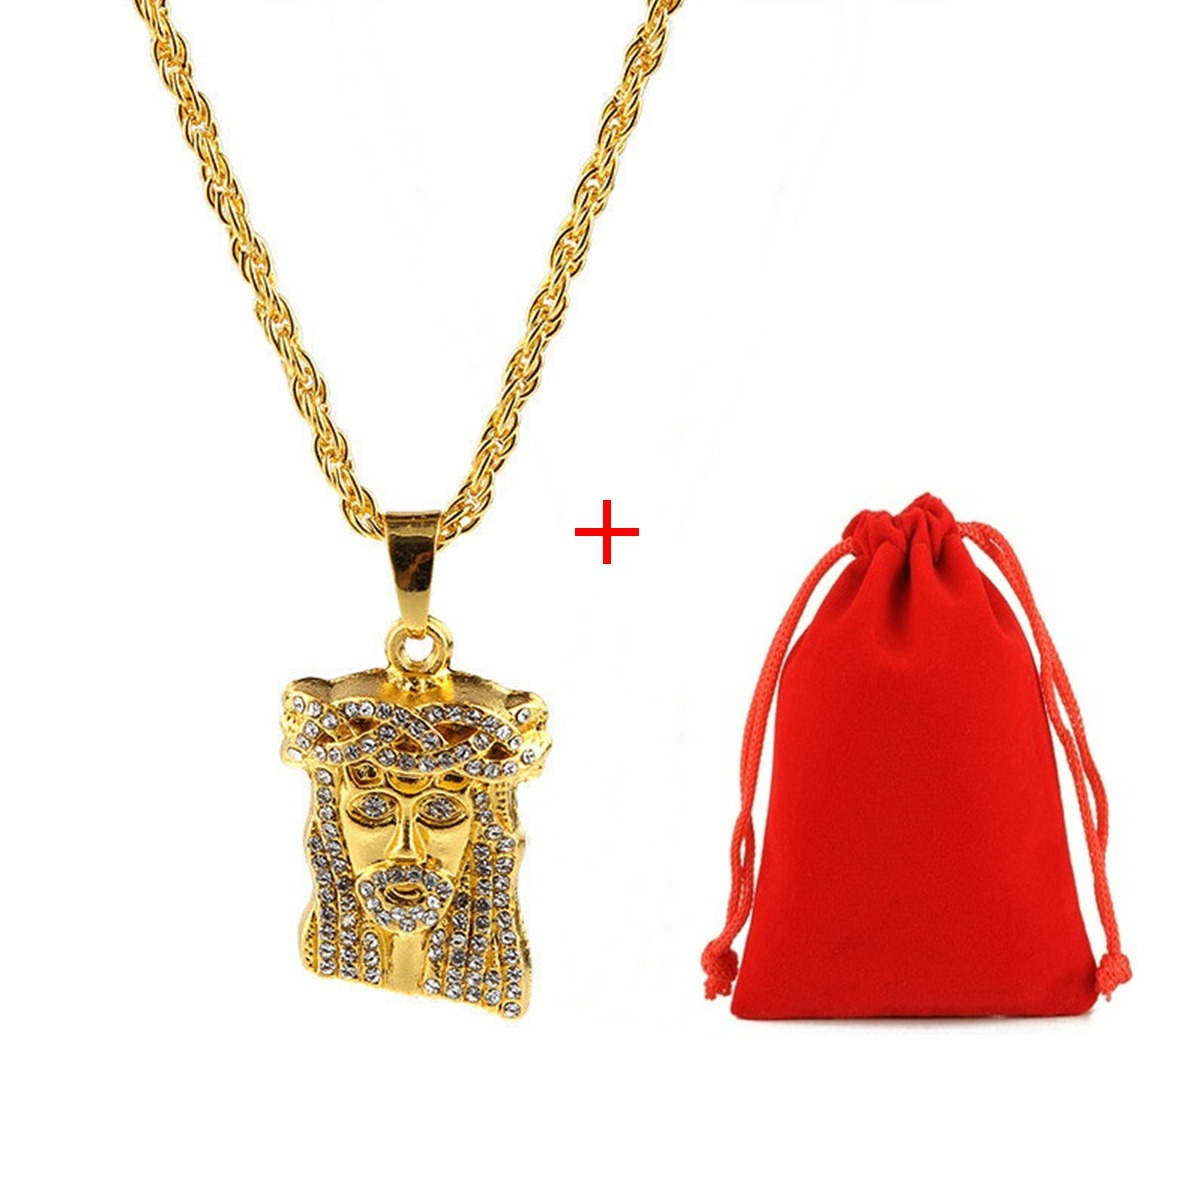 colar corrente jesus hip hop funk rap luxo top ouro diamante. Carregando  zoom. 7e4c29a70b